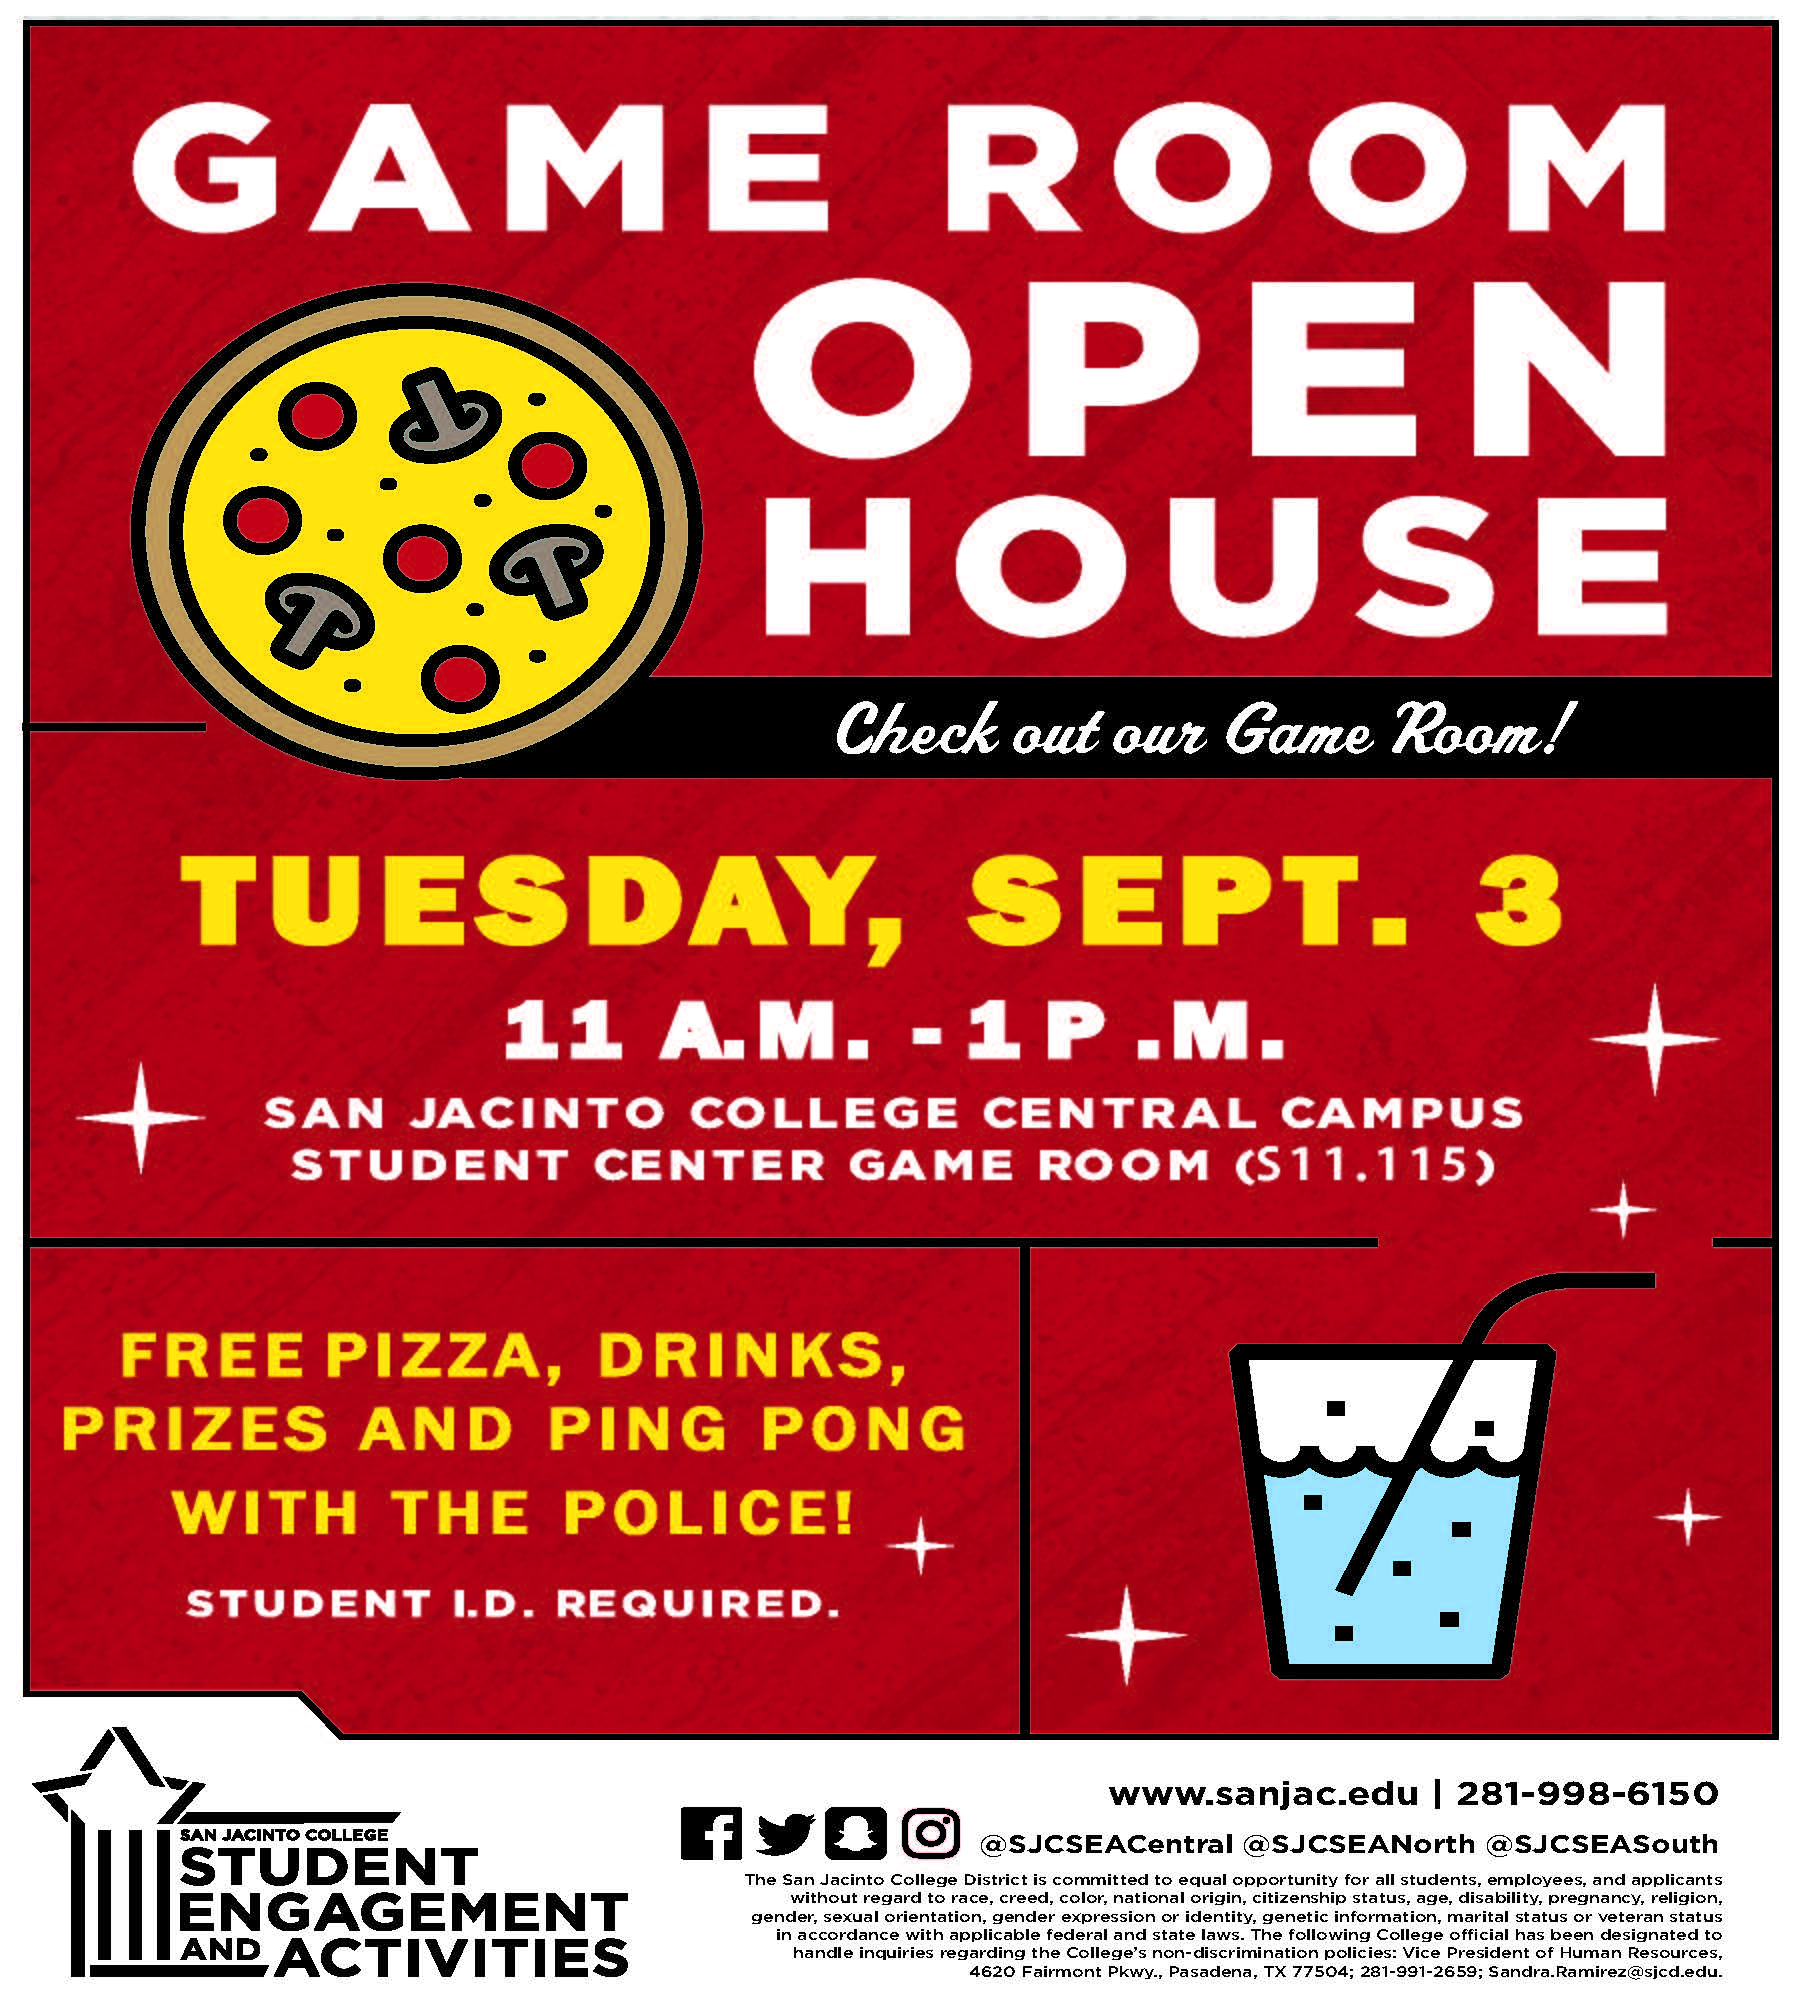 Game Room Open House SOUTH